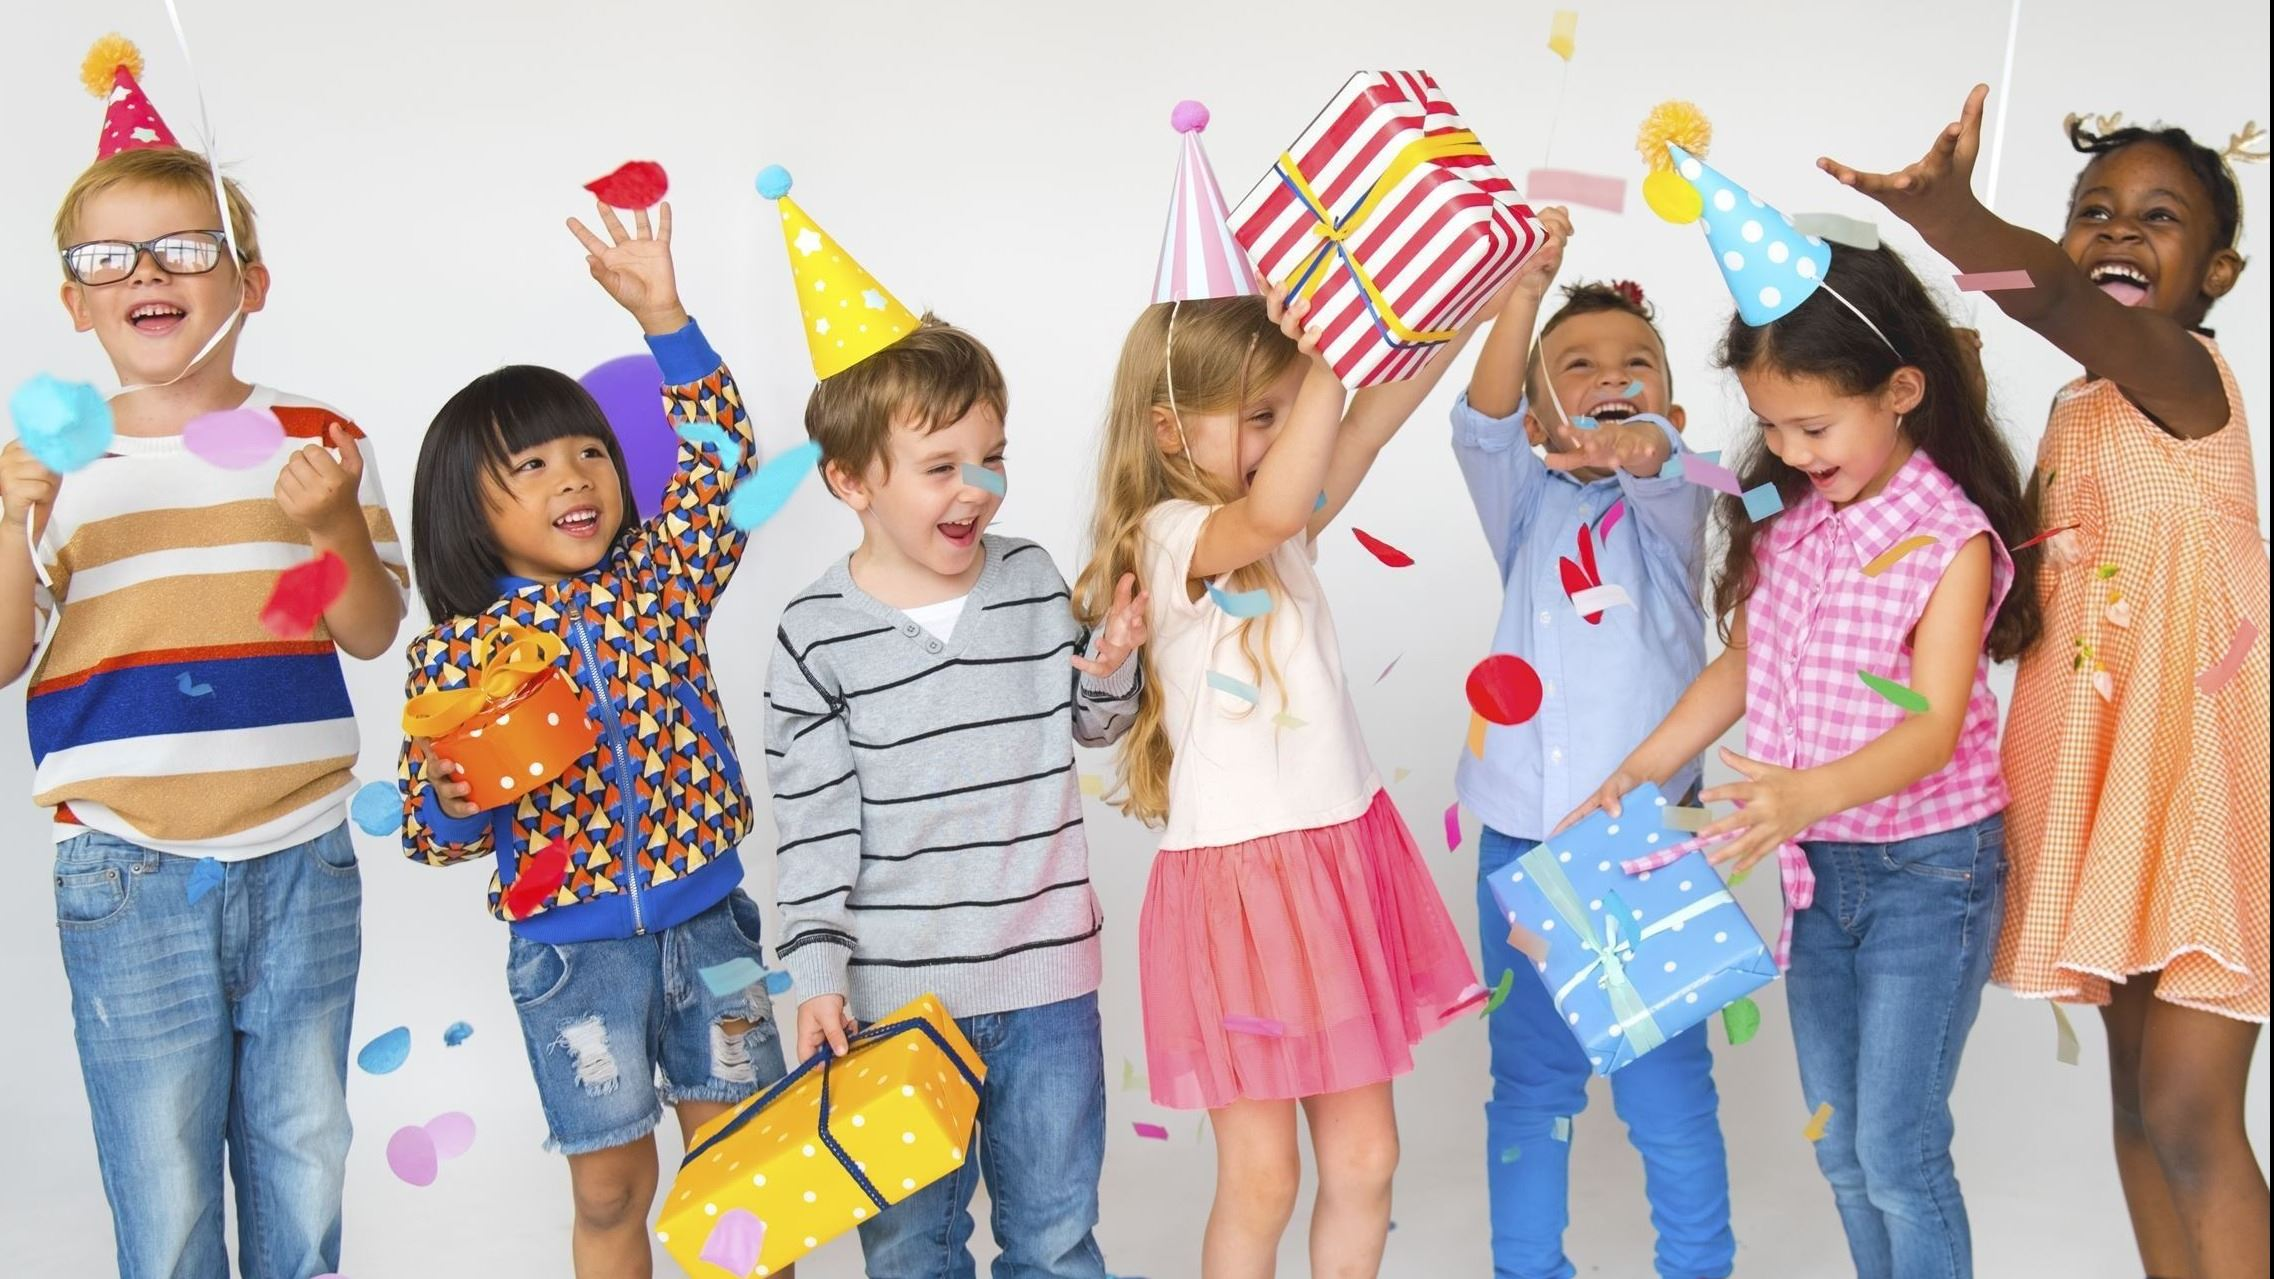 Children at Birthday Party and Celebration